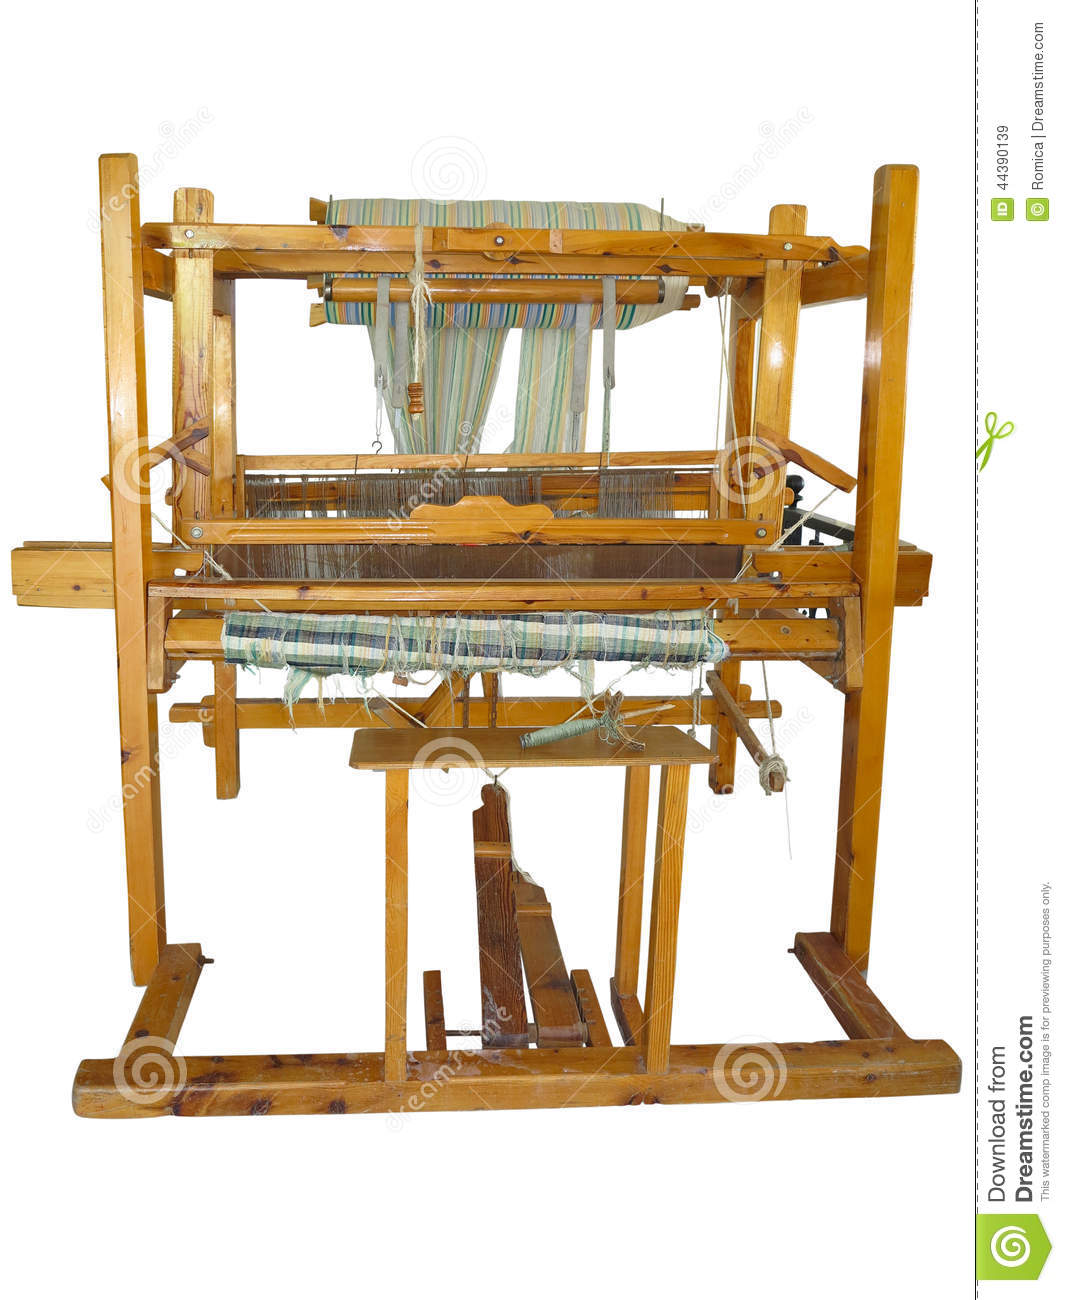 Ancient Loom For Fabric Manufacturing Stock Photo